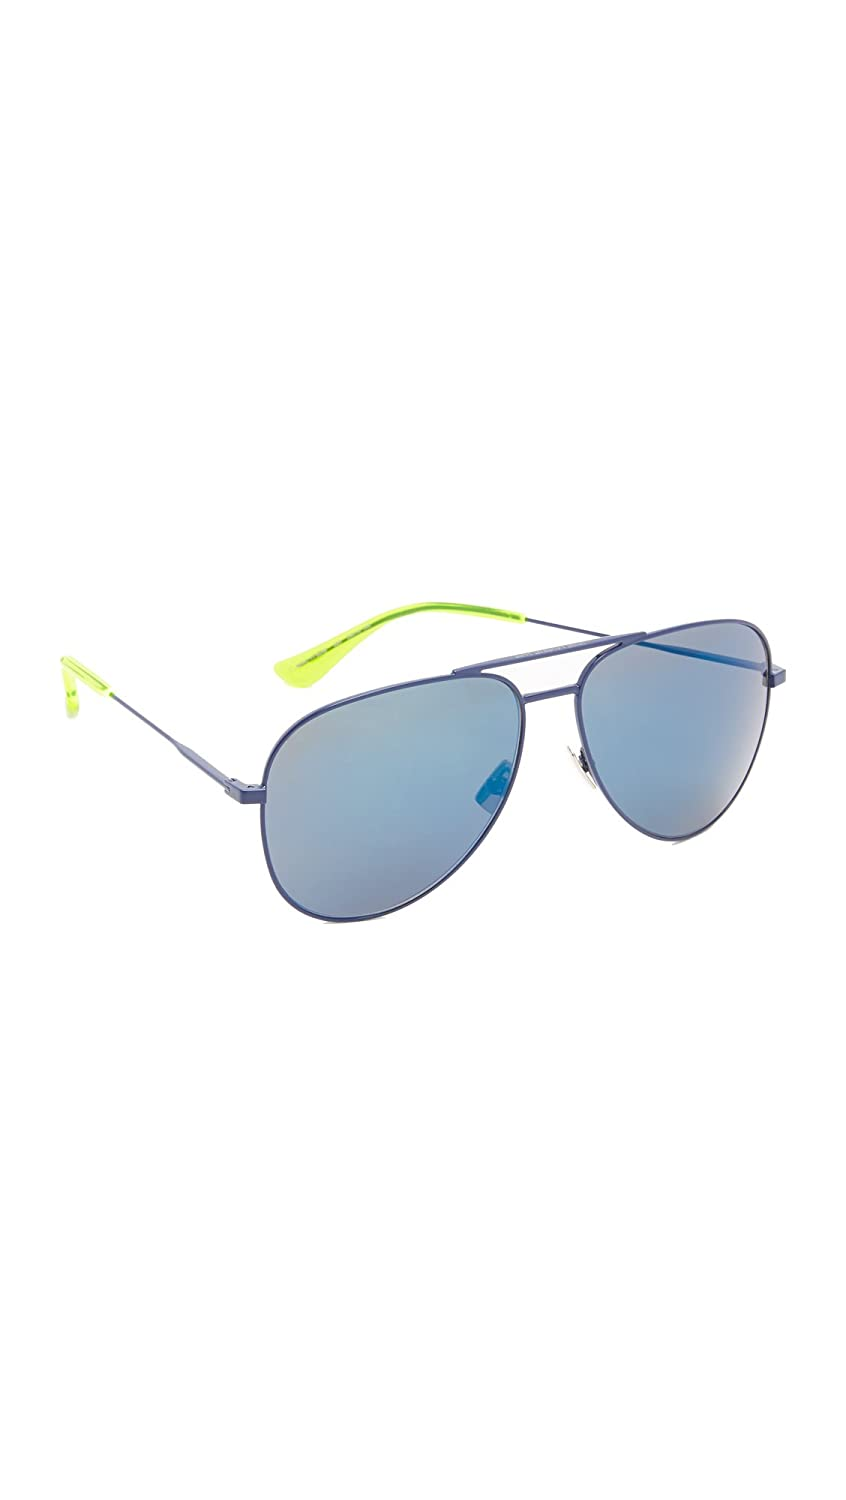 b99fc7f454d343 Saint Laurent - CLASSIC 11 SURF